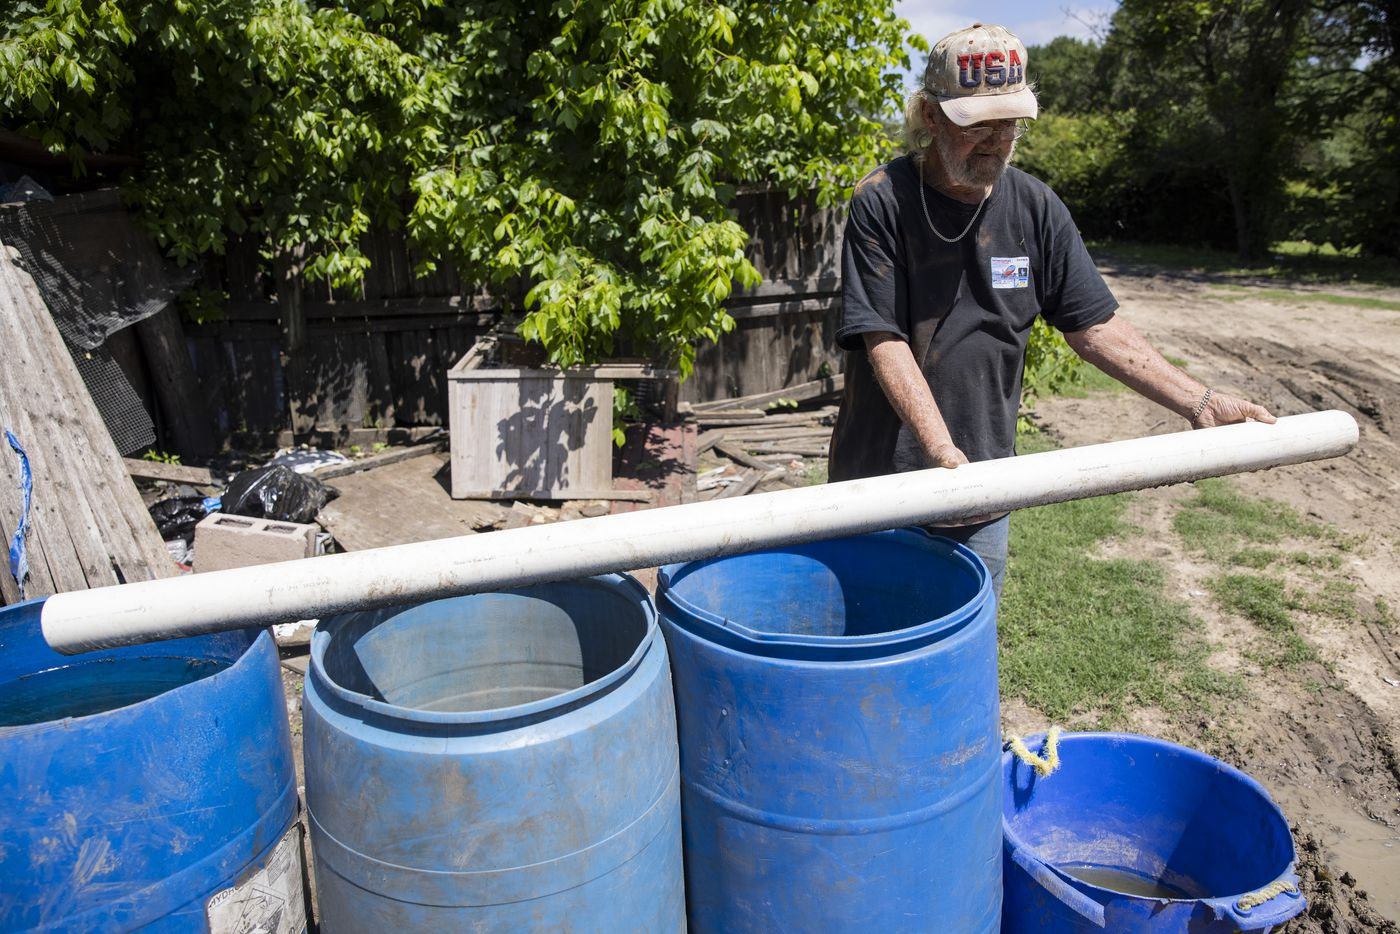 Richard Shivers shows the tube he uses to fill barrels with water from a water container tank he uses to transport water to the lot he shares with Rachel Garcia on Wednesday, May 26, 2021, in Sandbranch. (Juan Figueroa/The Dallas Morning News)